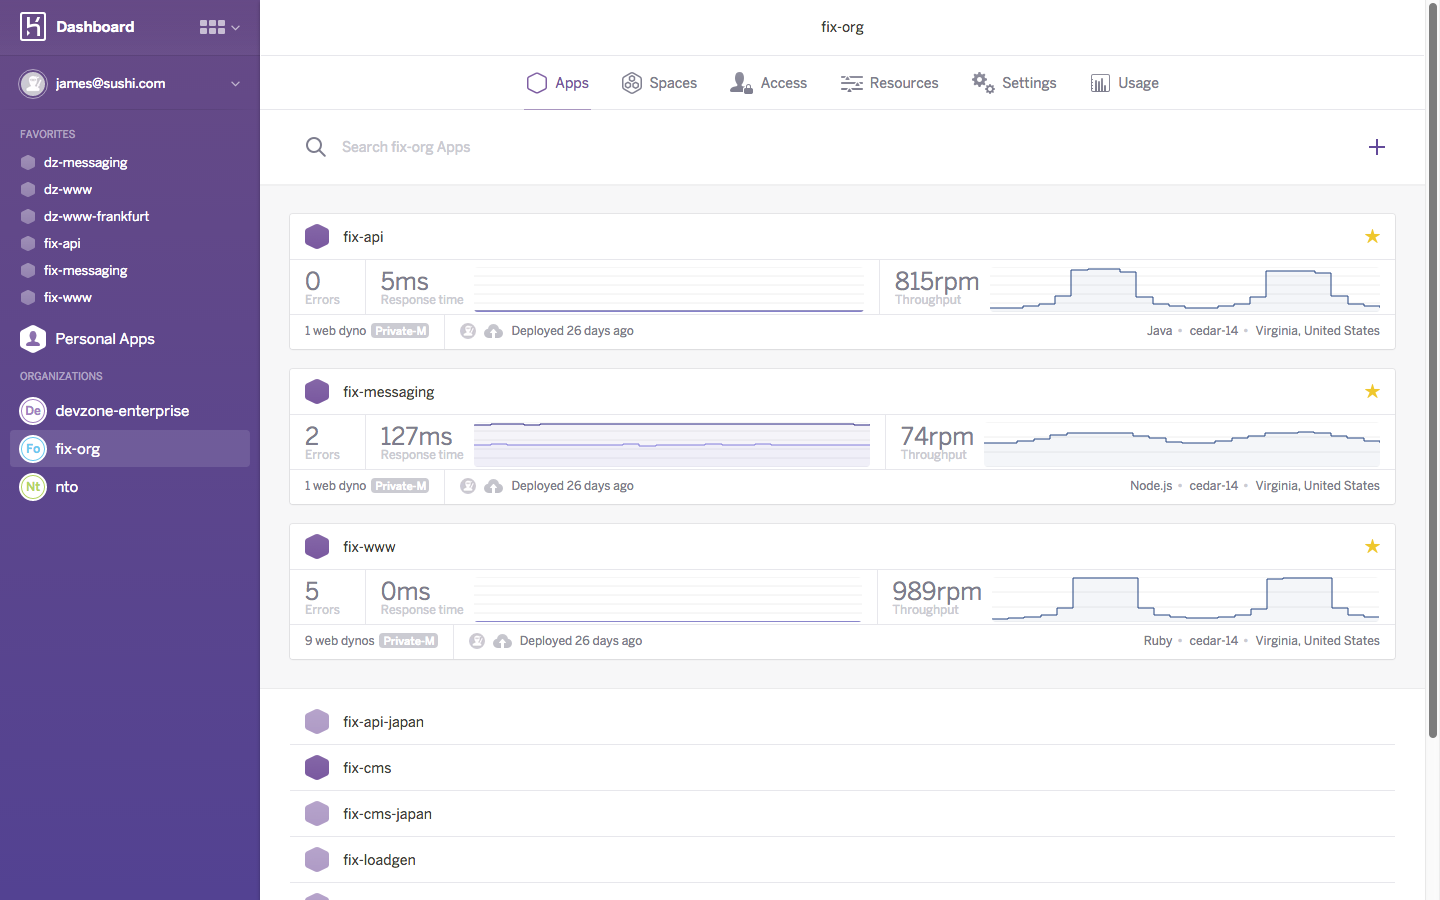 Heroku Enterprise: The Public Cloud Made Enterprise Ready